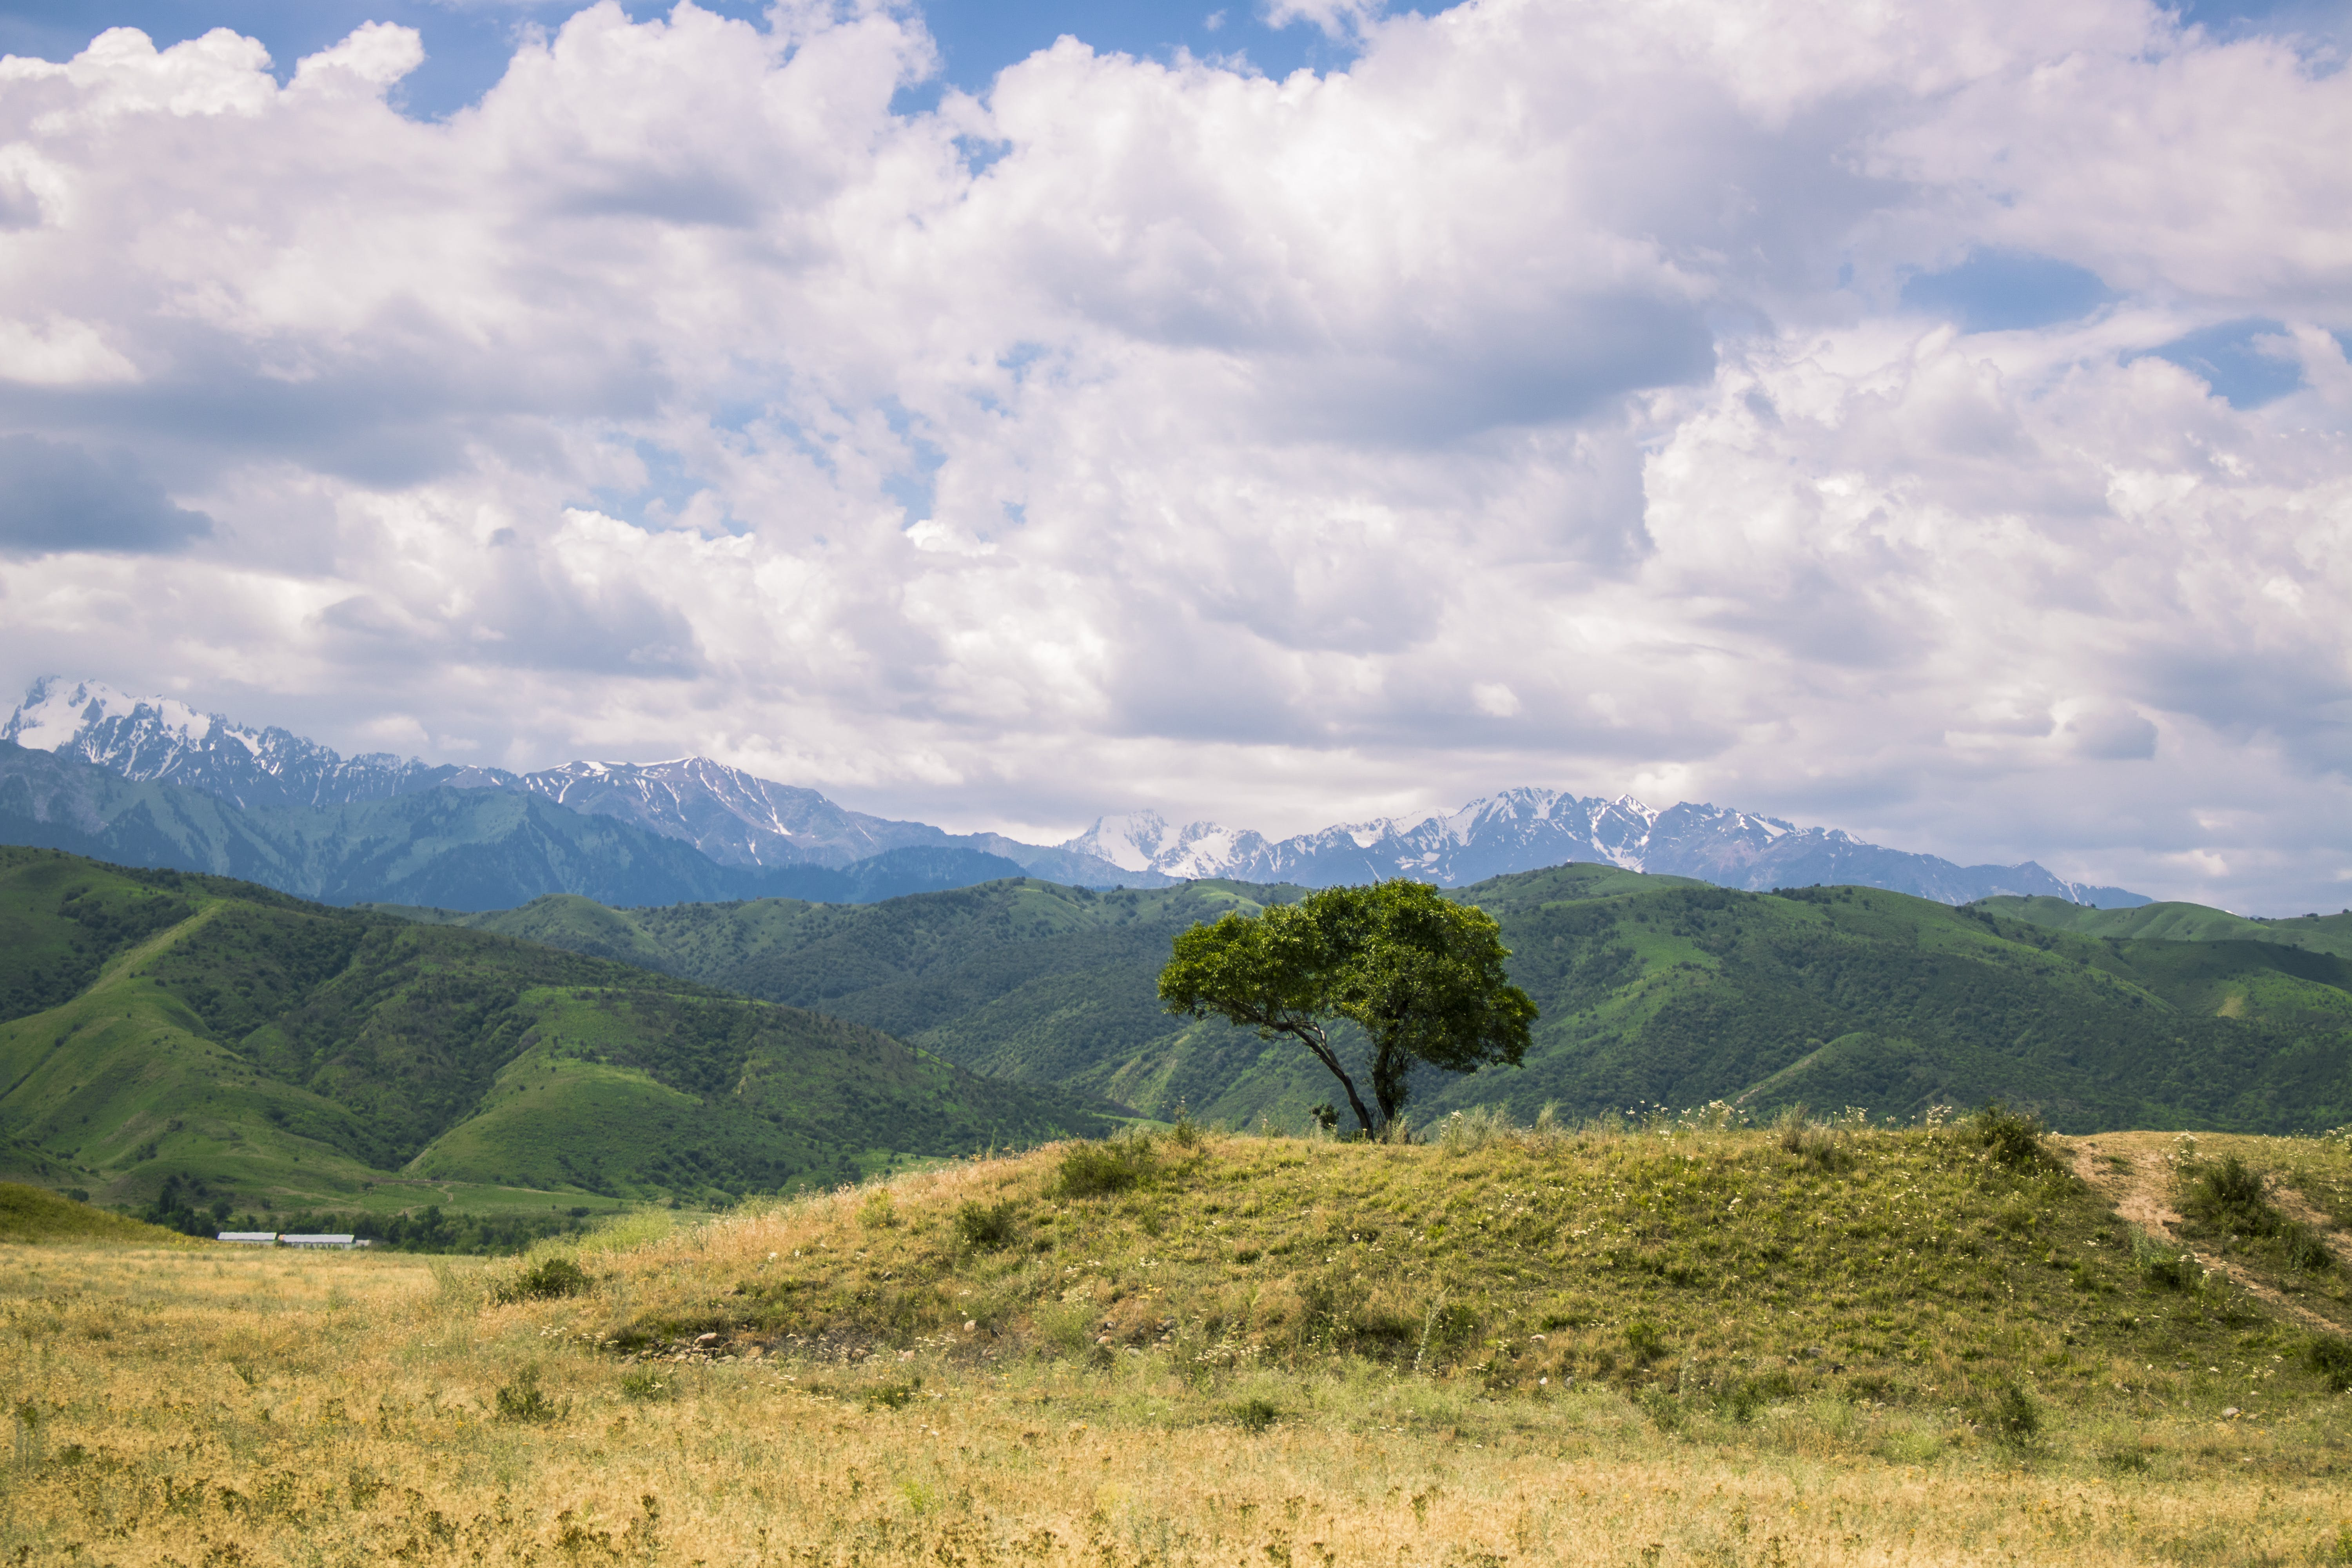 Landscape Photograph of Tree on Mountain Ranges